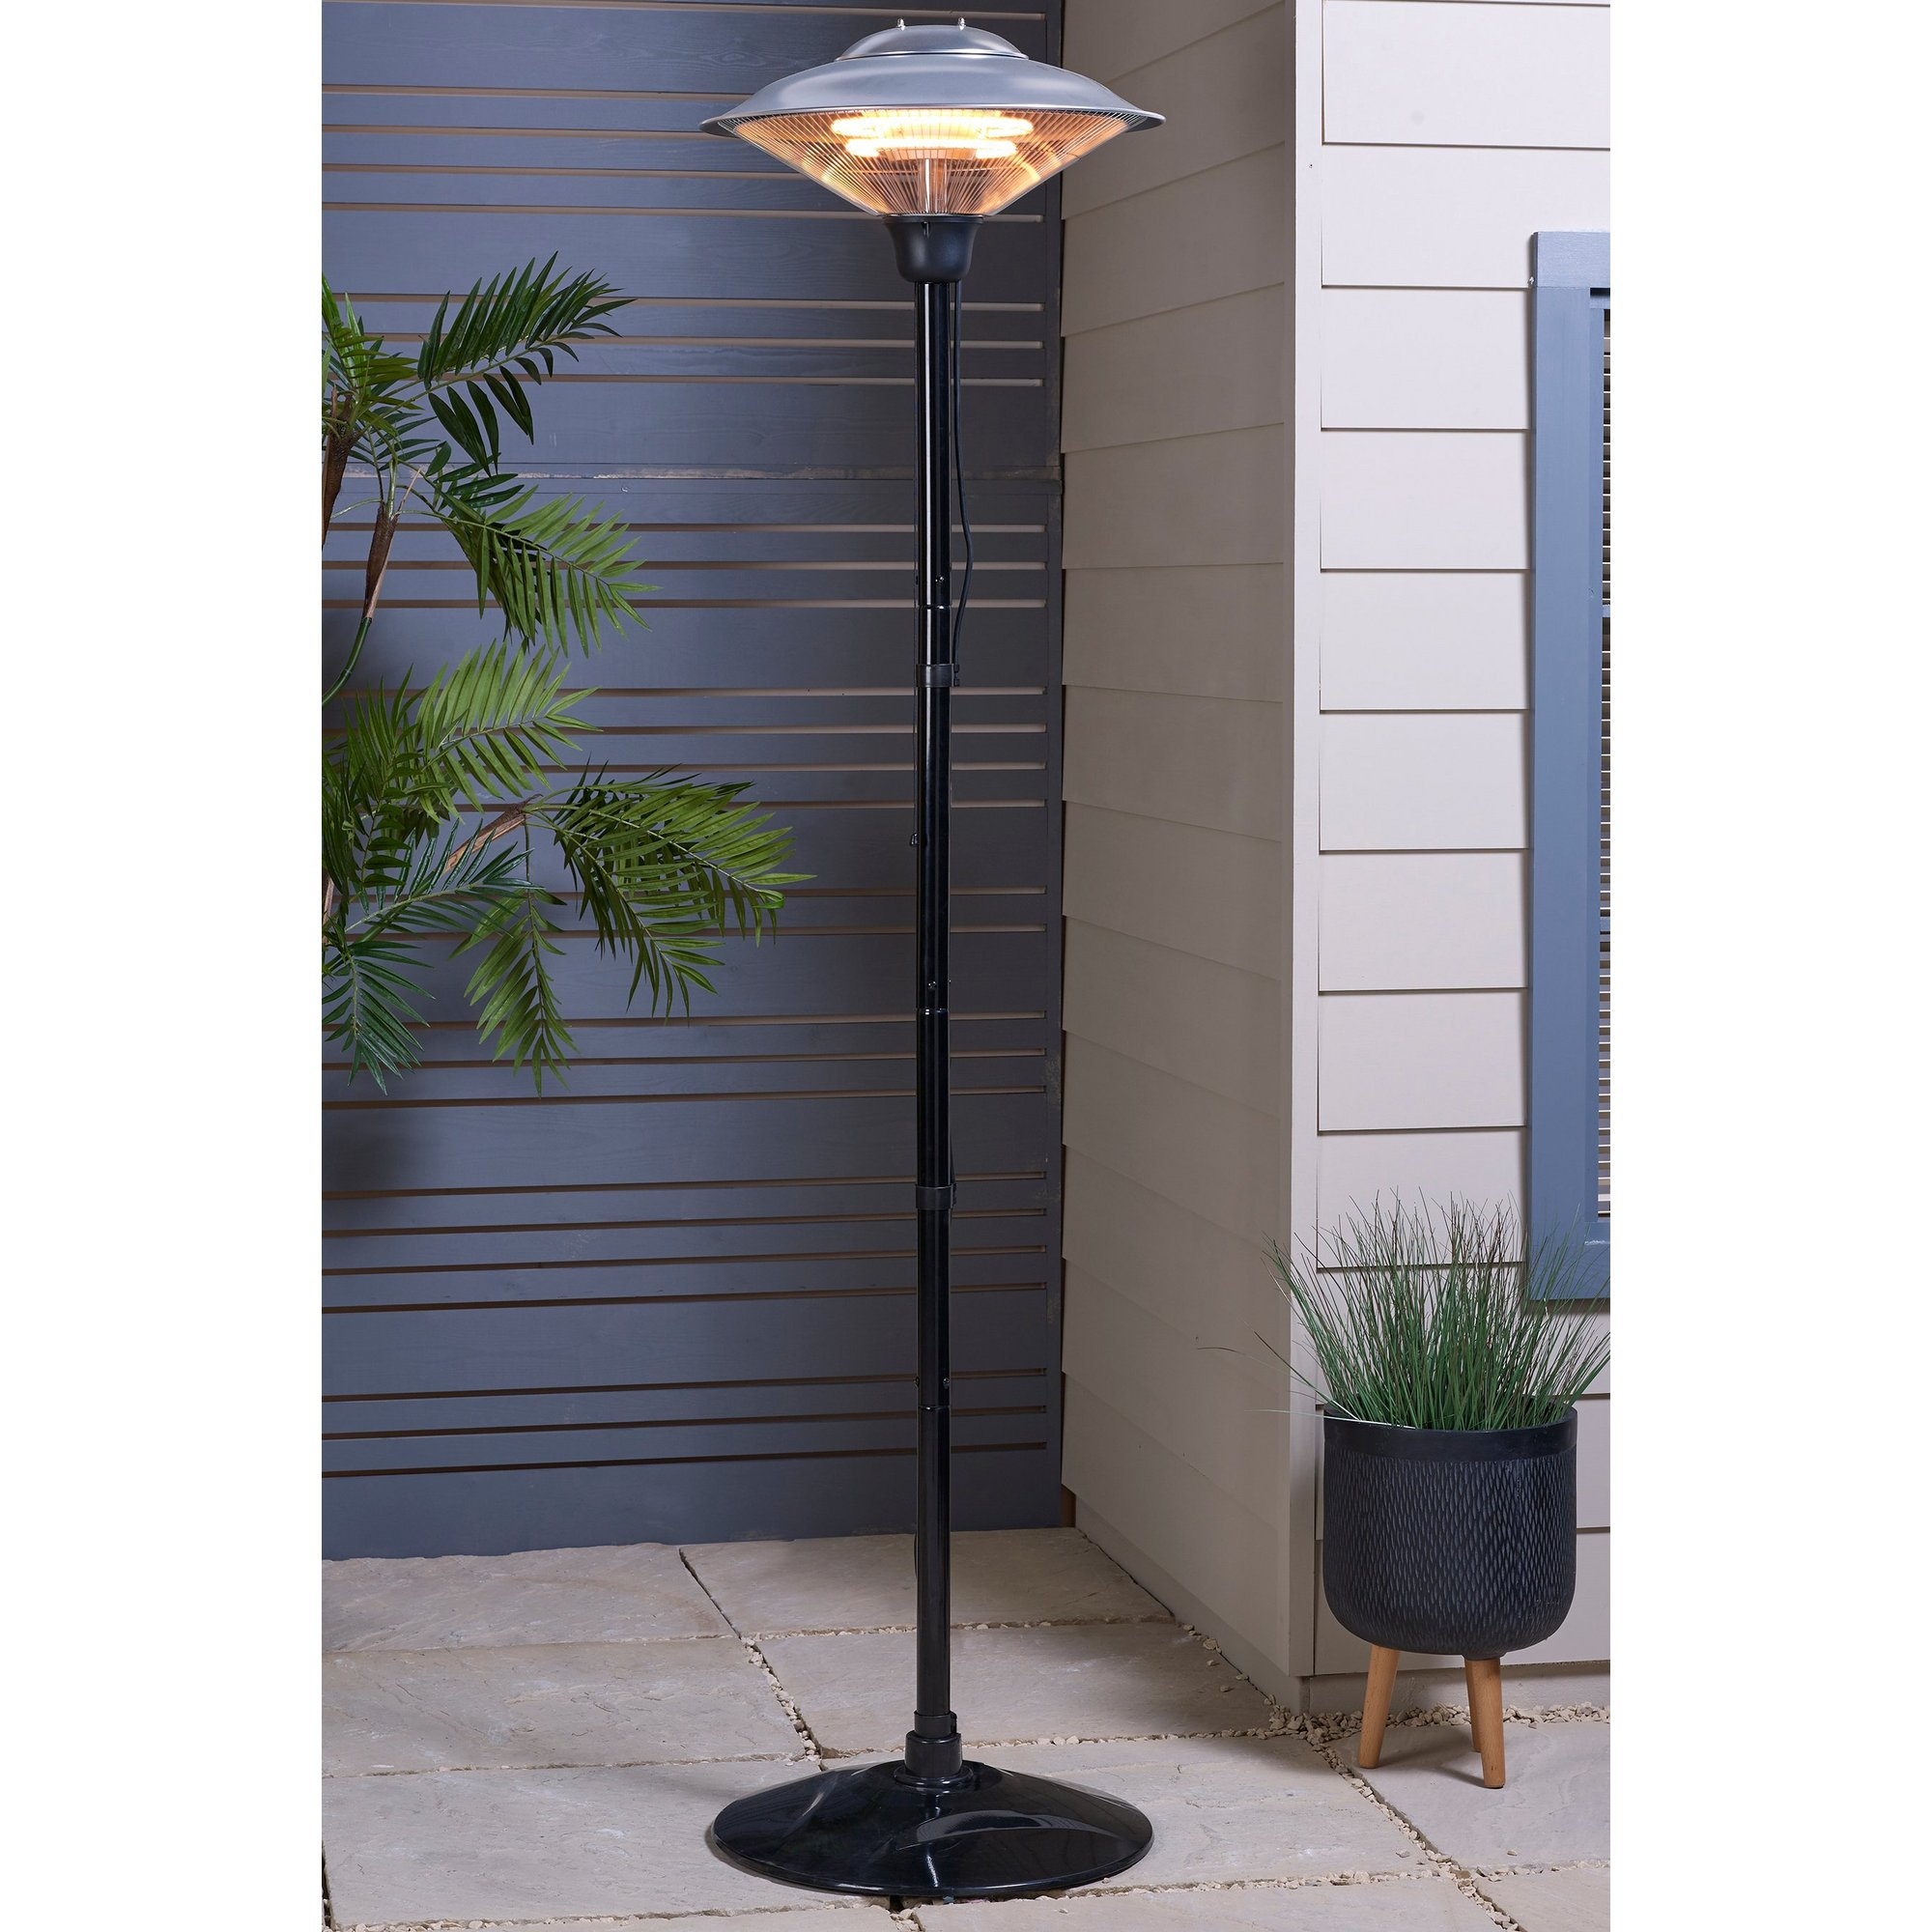 Image of Standing Patio Heater